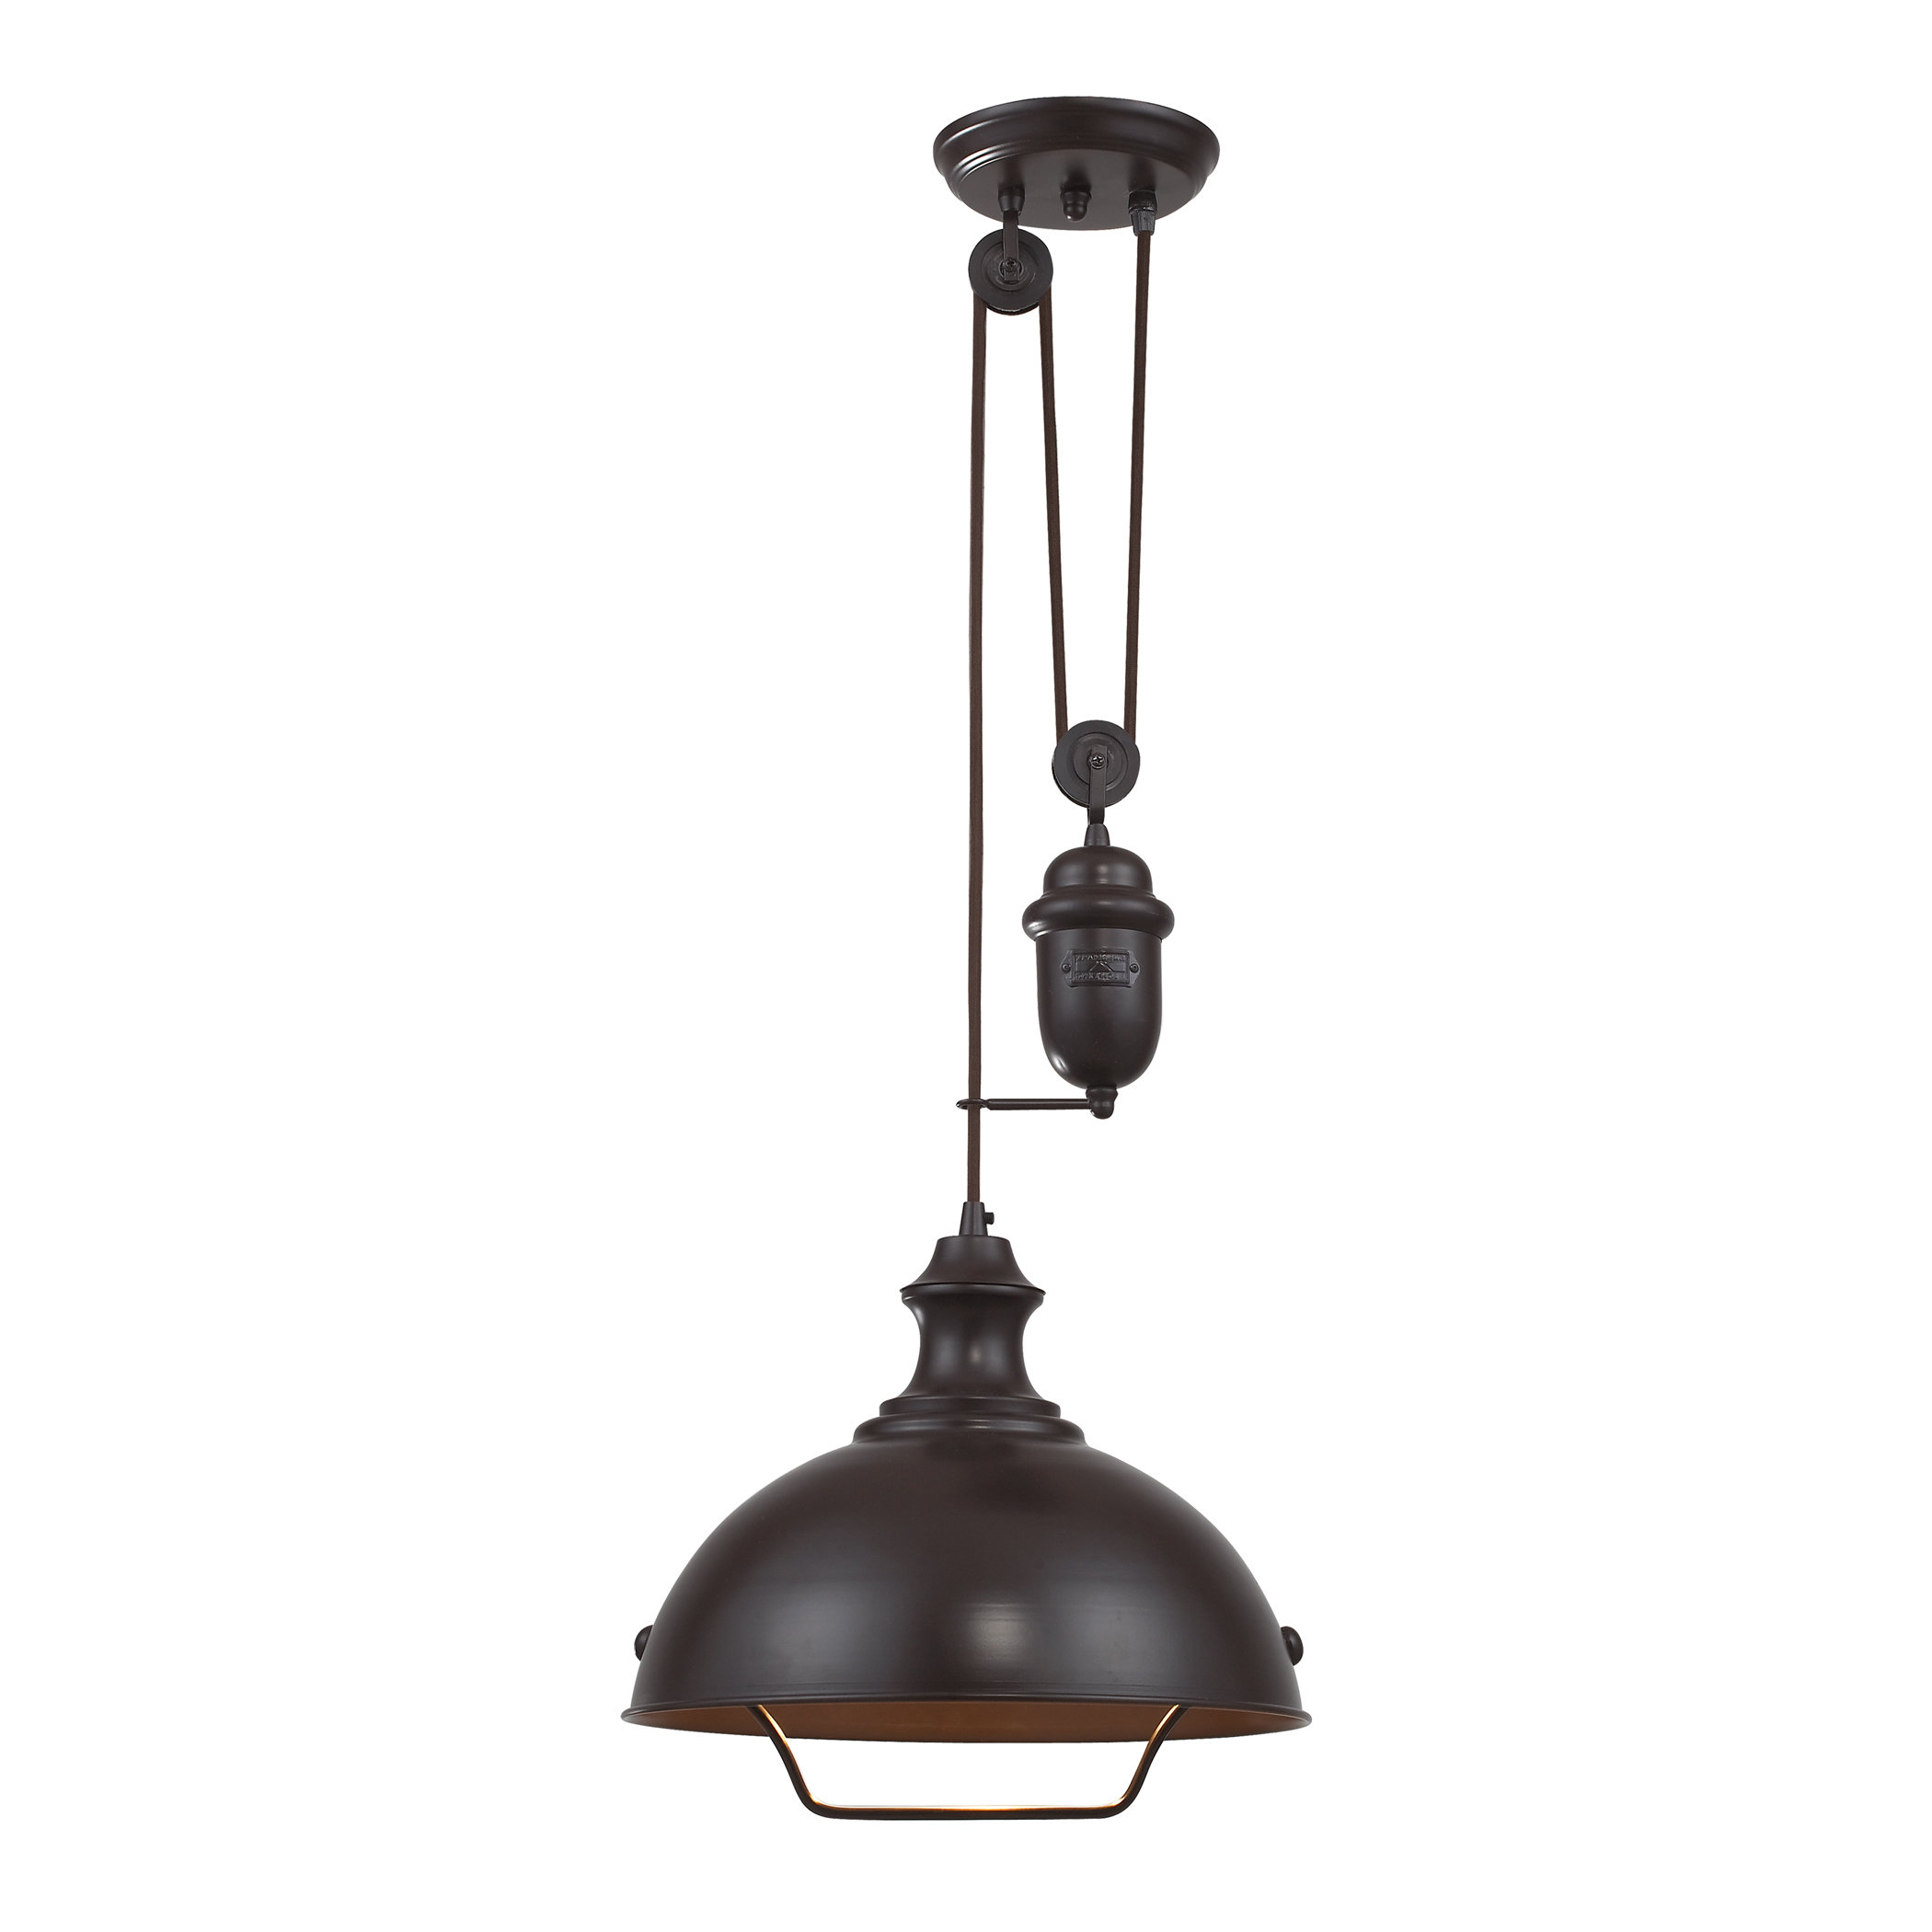 Abordale 1 Light Single Dome Pendants For Favorite Legrand 1 Light Single Dome Pendant (View 5 of 20)